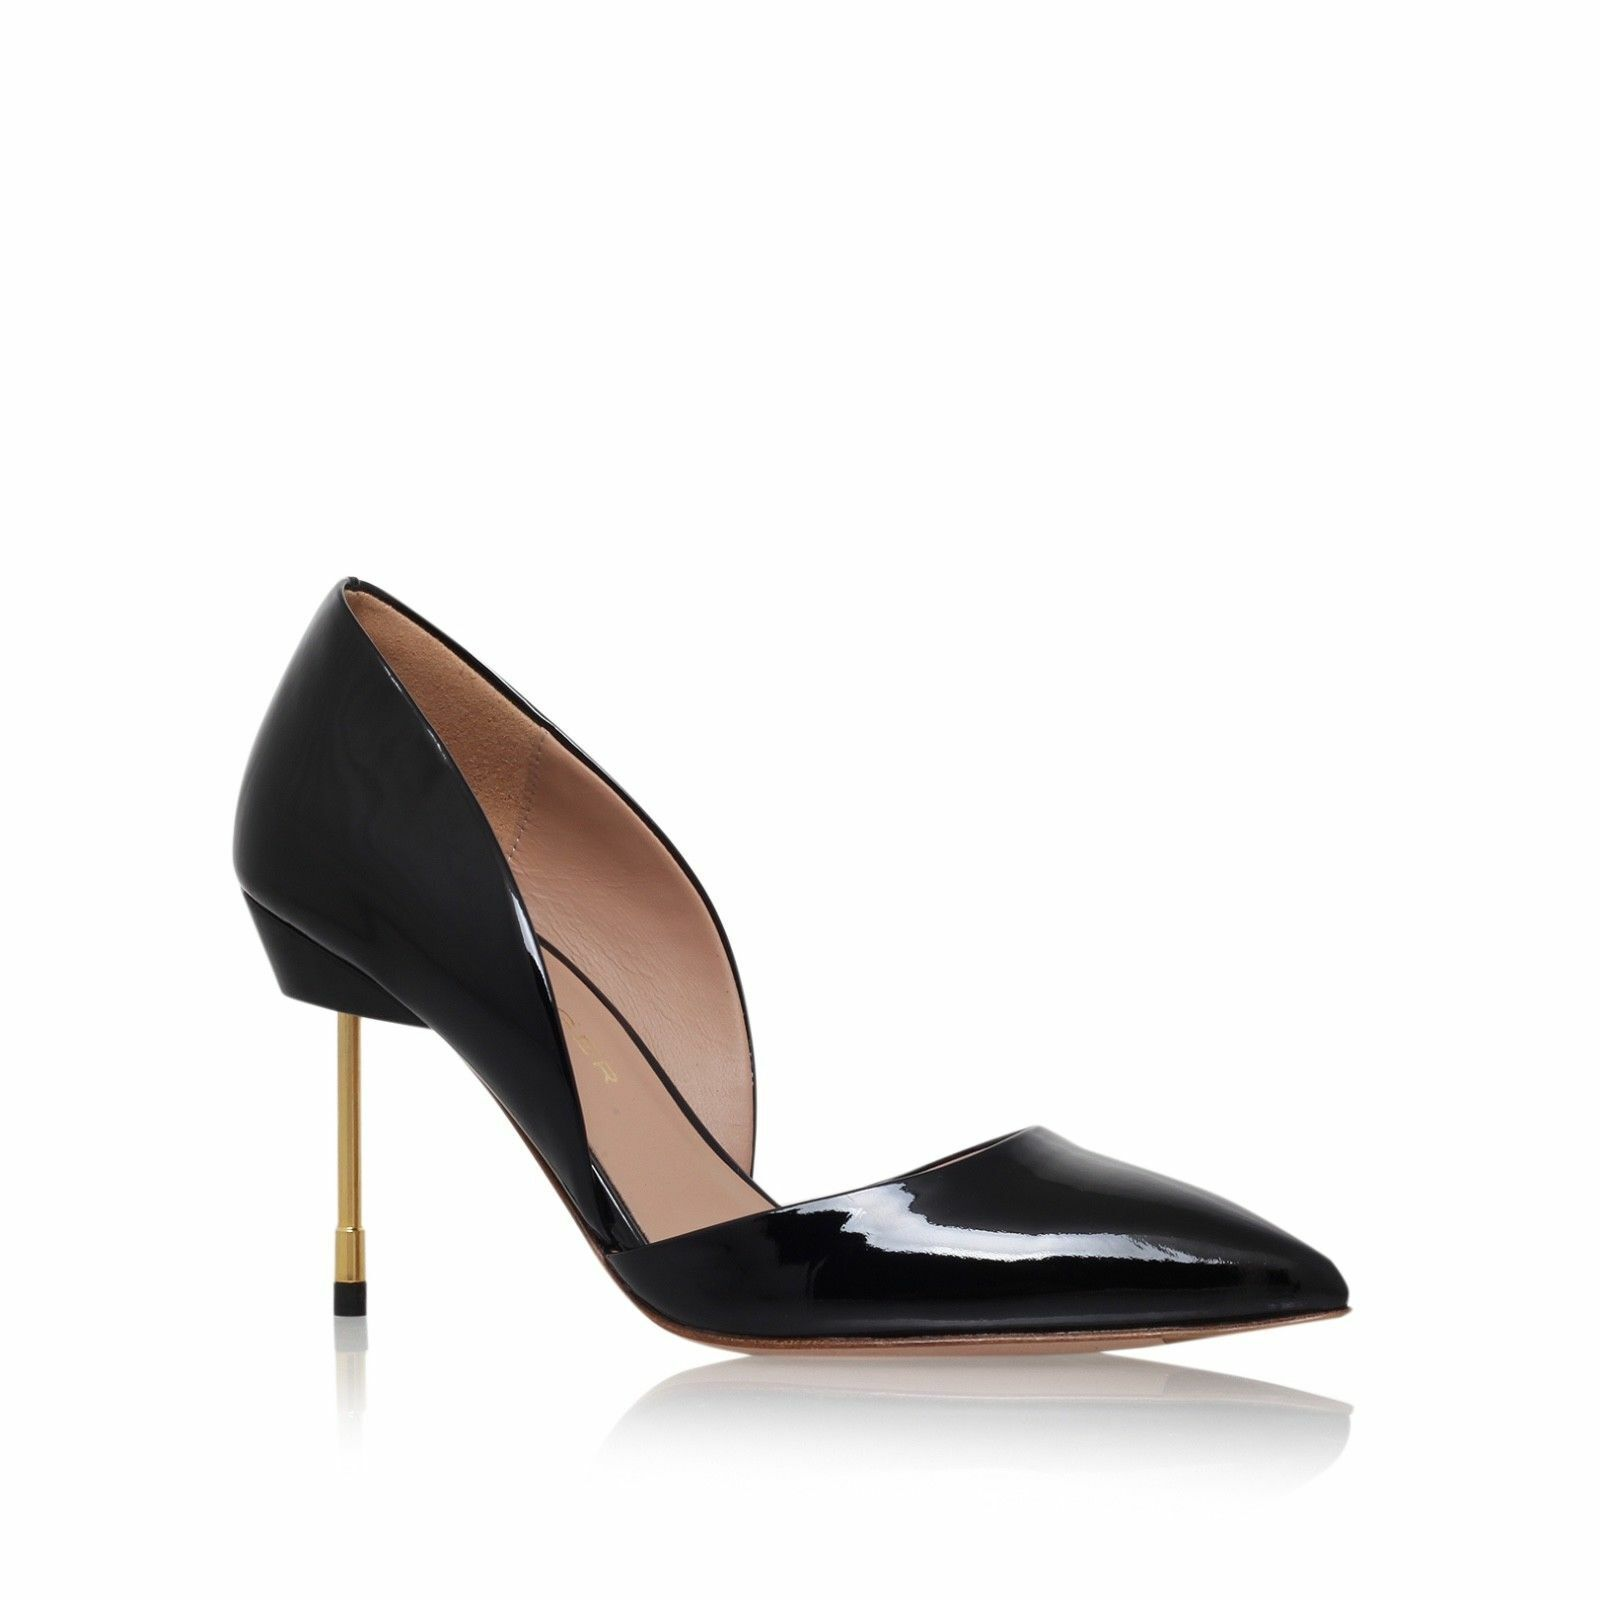 Kurt Geiger London Bond Size 7 EU 40 Womens Black High Heels Court shoes New